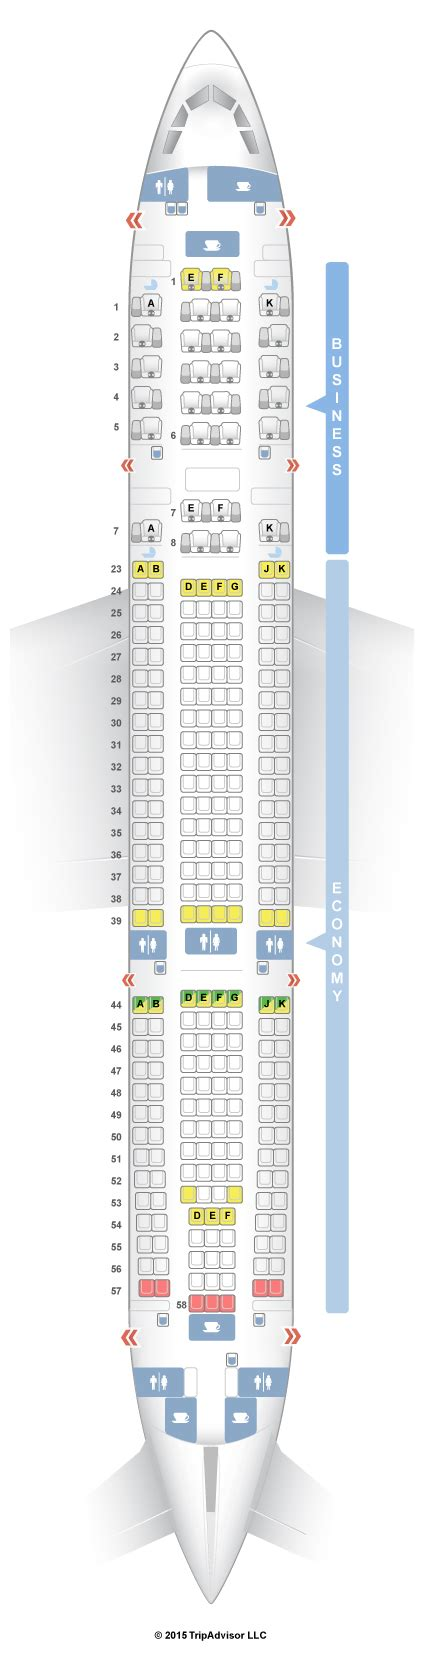 cook siege seatguru seat map qantas airbus a330 200 332 domestic